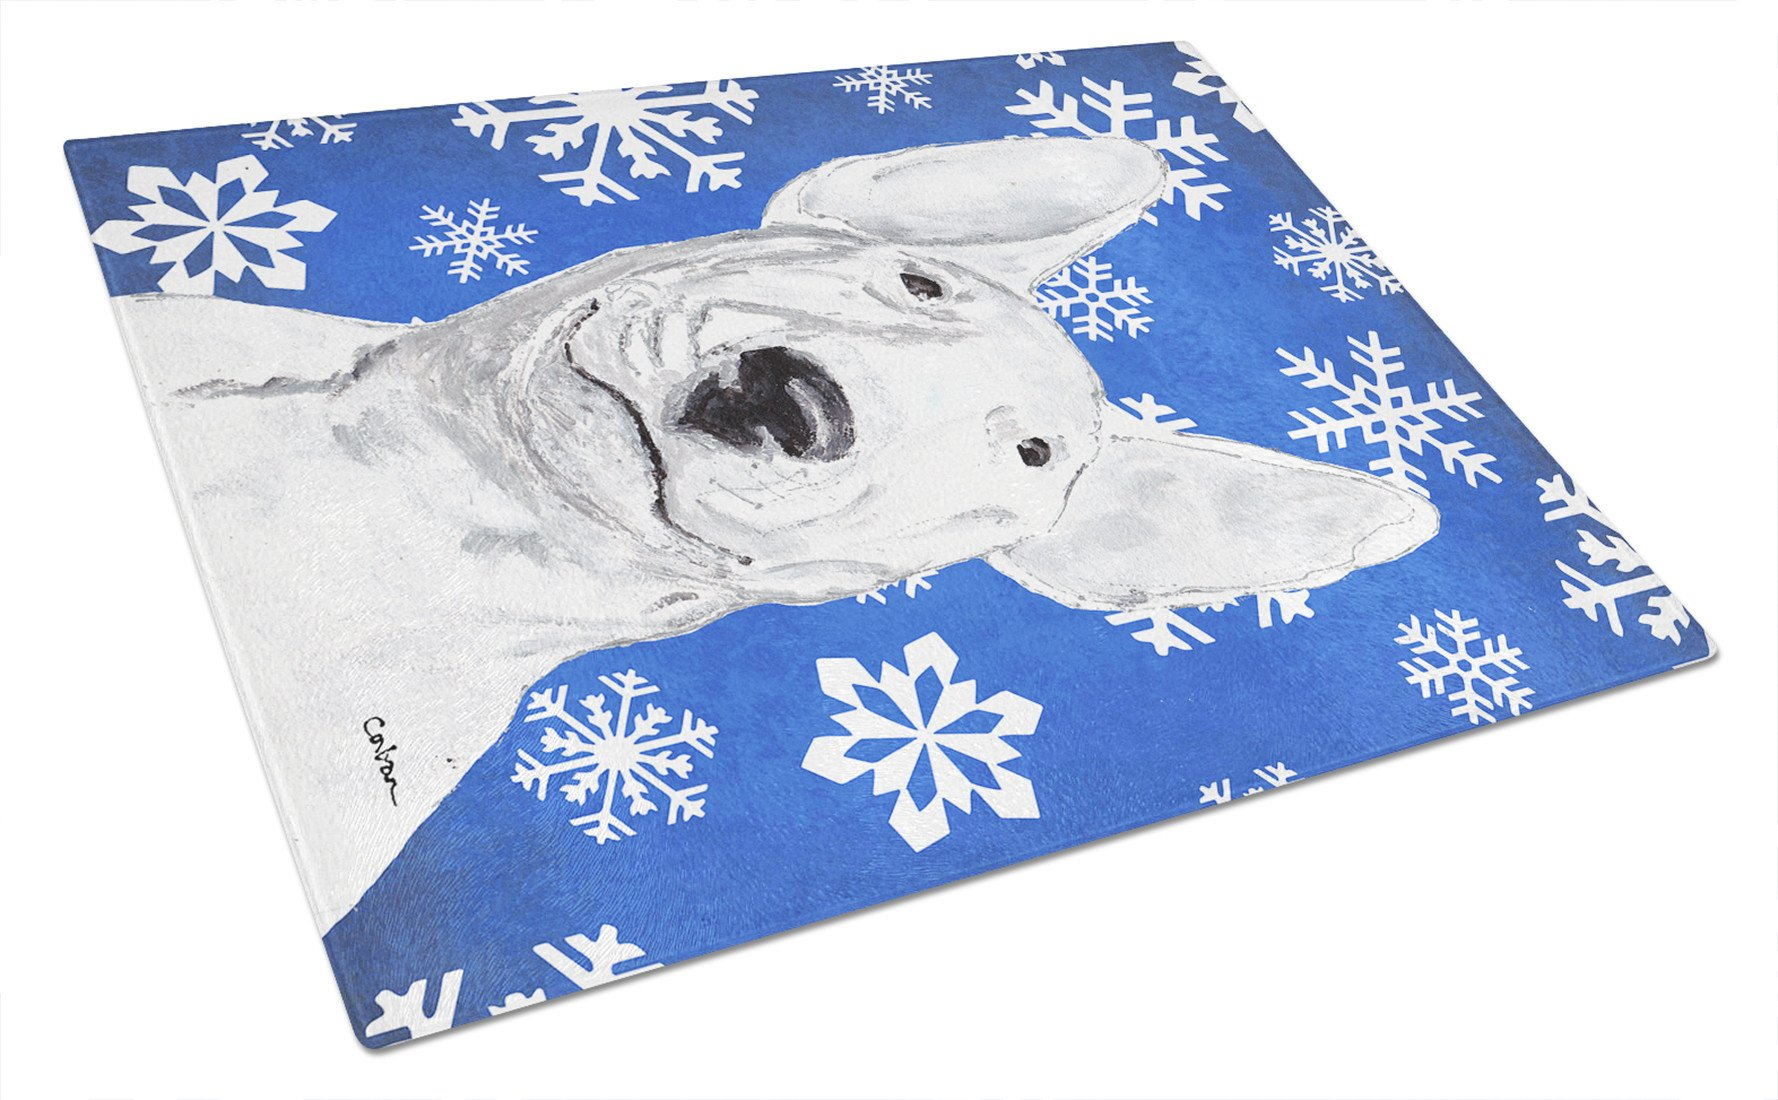 Bull Terrier Blue Snowflake Winter Glass Cutting Board Large by Caroline's Treasures